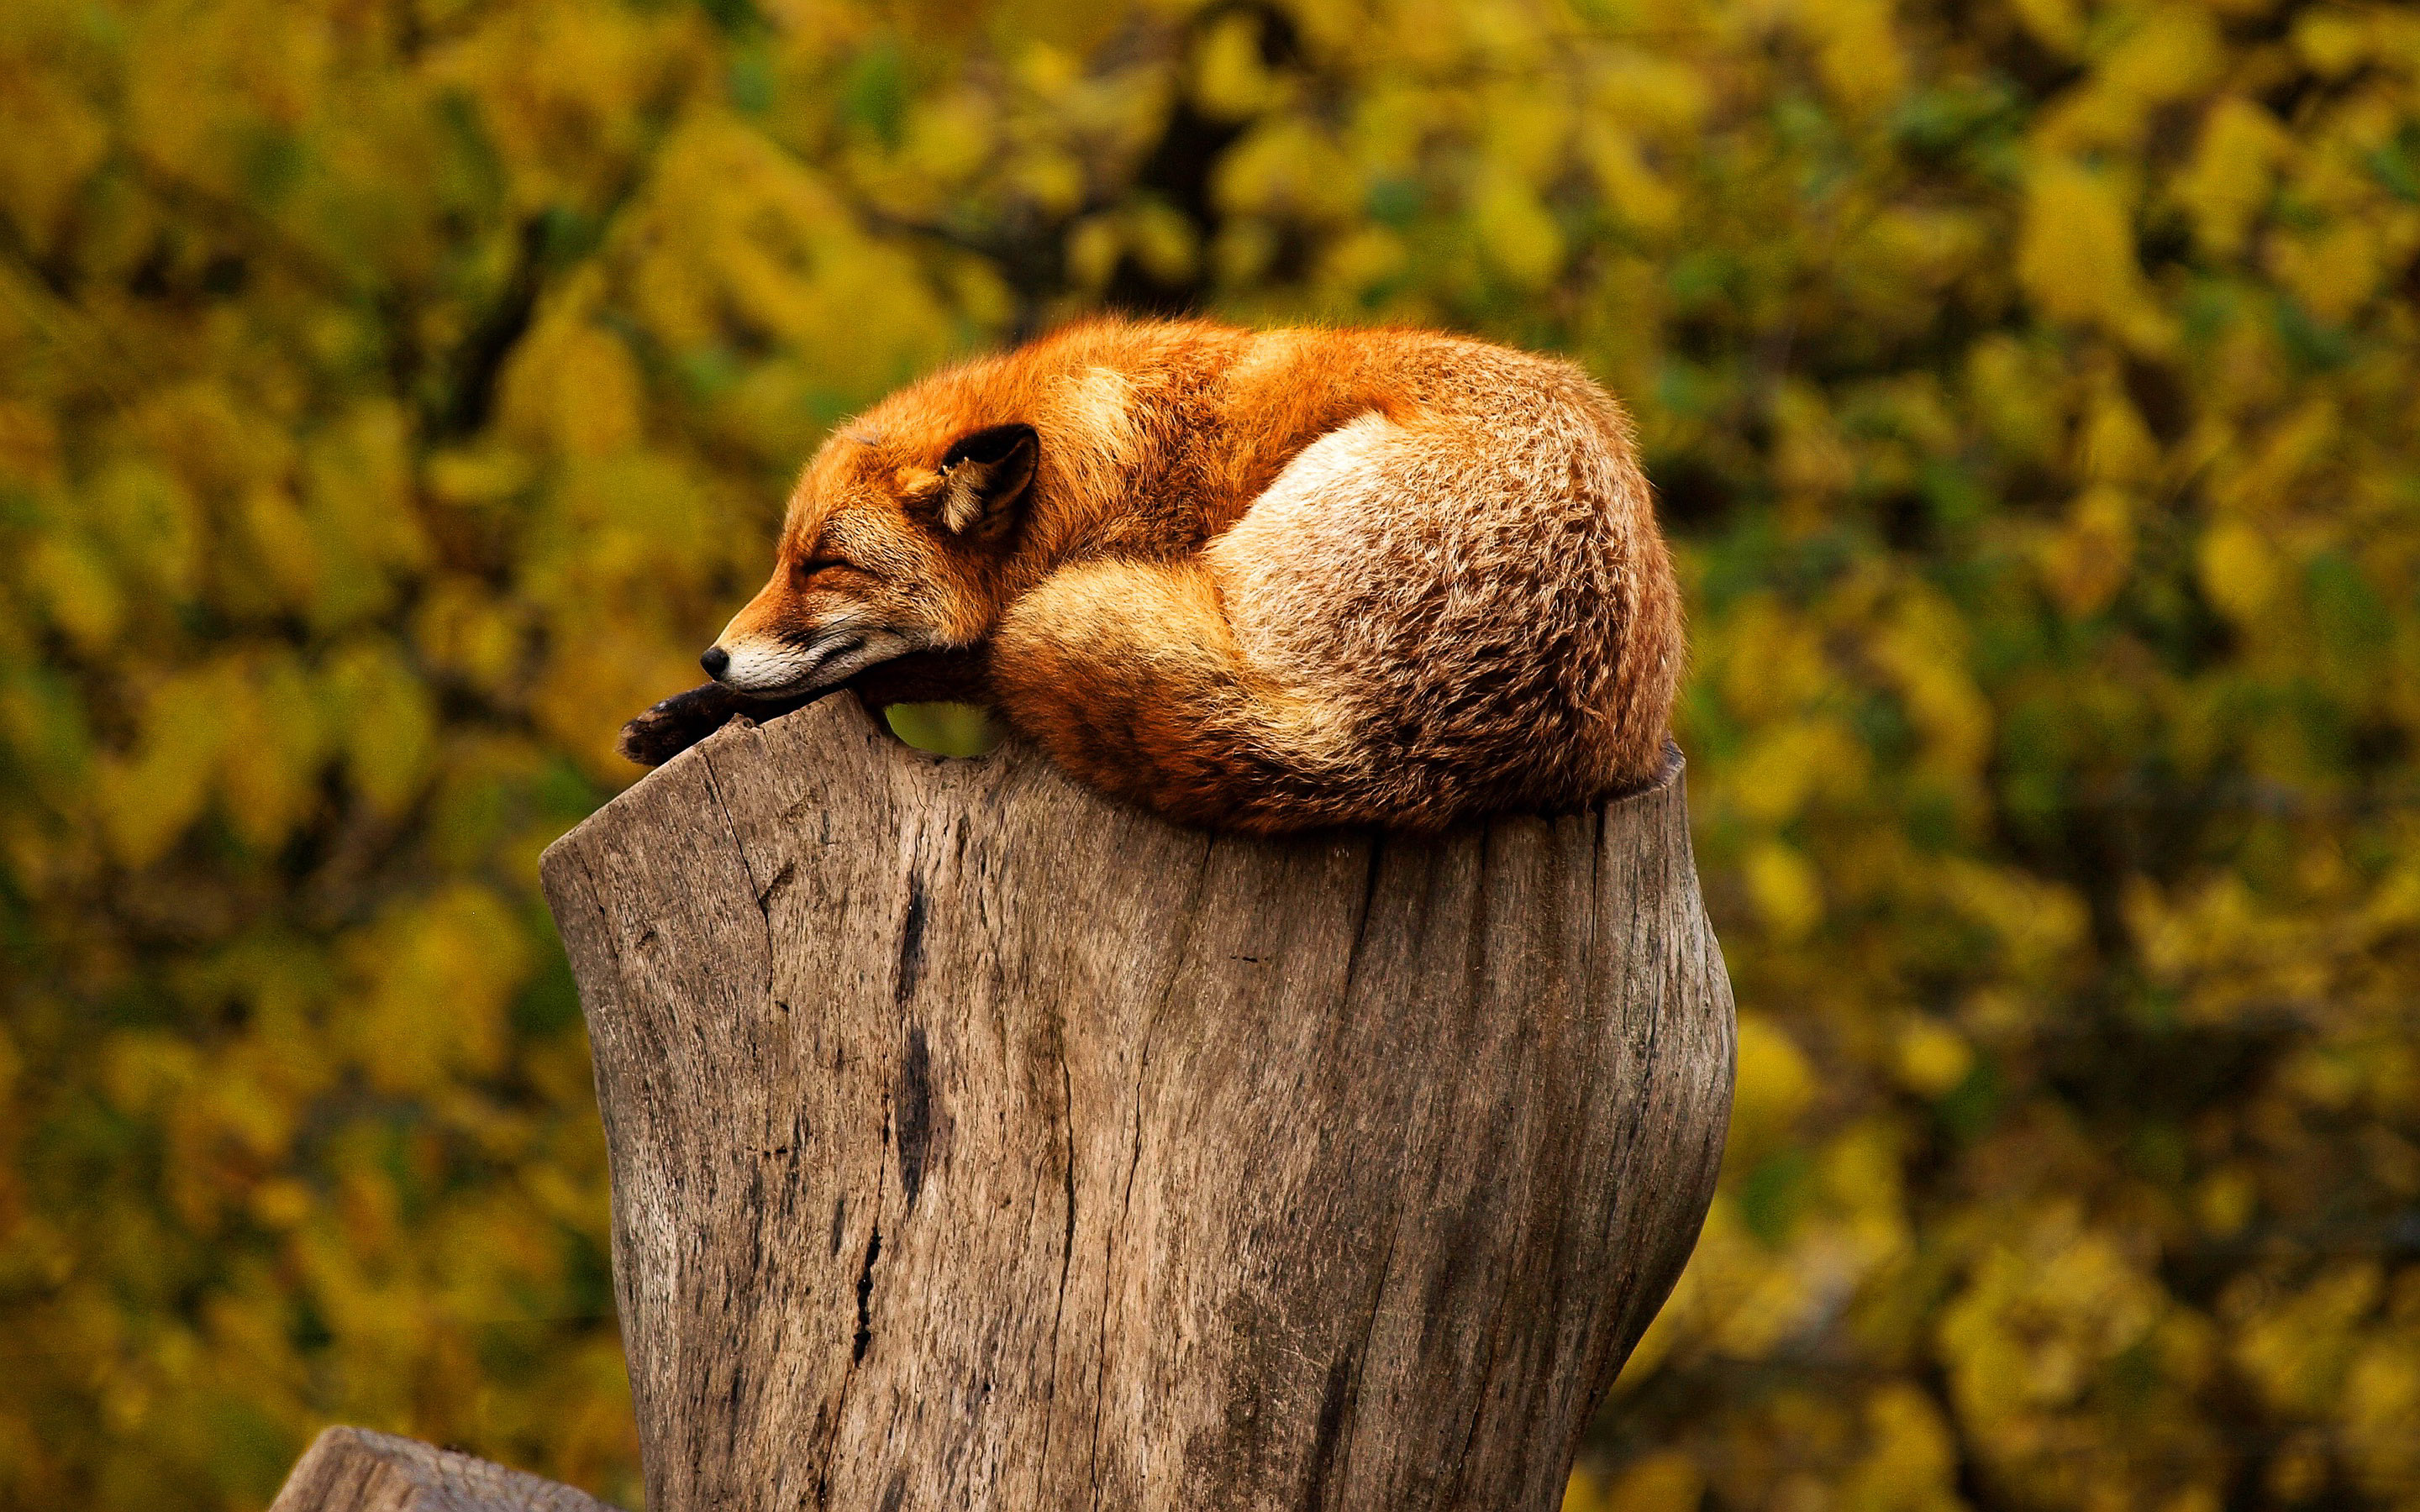 20 awesome hd animal wallpapers